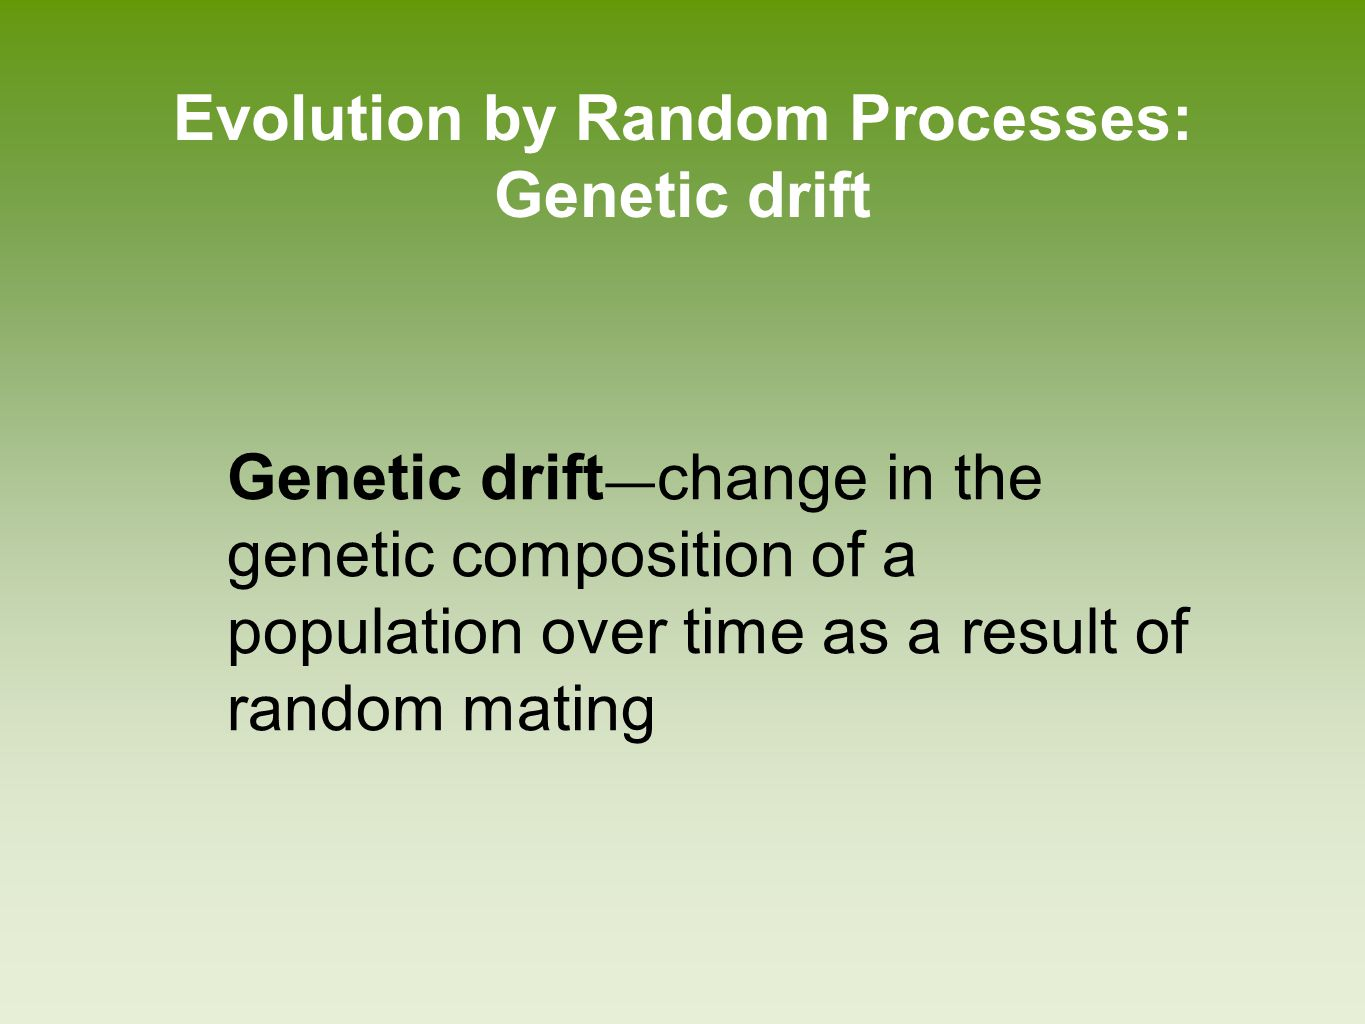 Evolution by Random Processes: Bottleneck effect Bottleneck effect ― a reduction in the genetic diversity of a population caused by a reduction in number of organisms